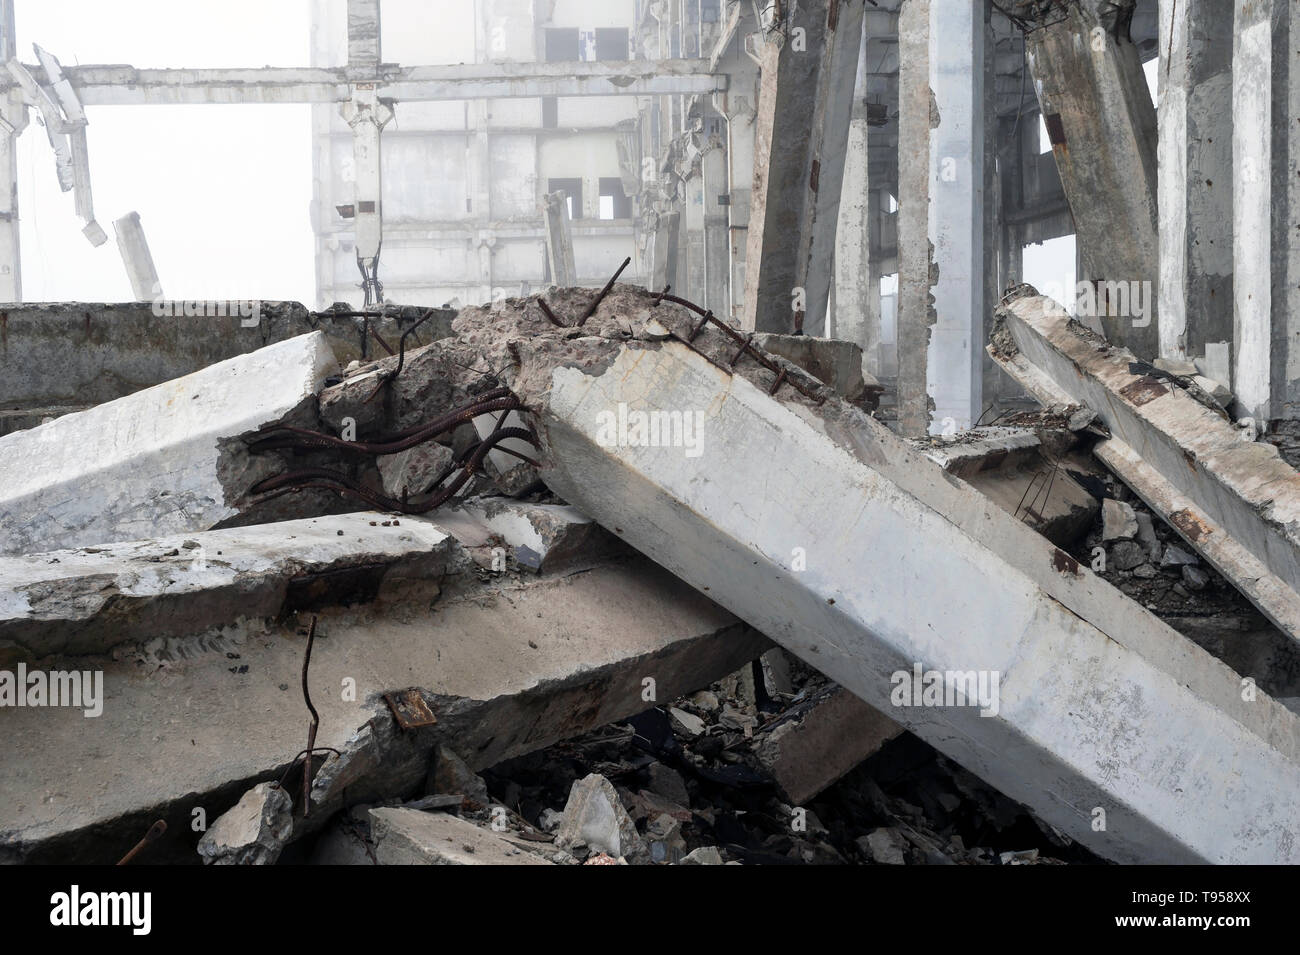 The destroyed big concrete building in a foggy haze. The frame of the building structure with huge piles lying in the foreground. Background. - Stock Image